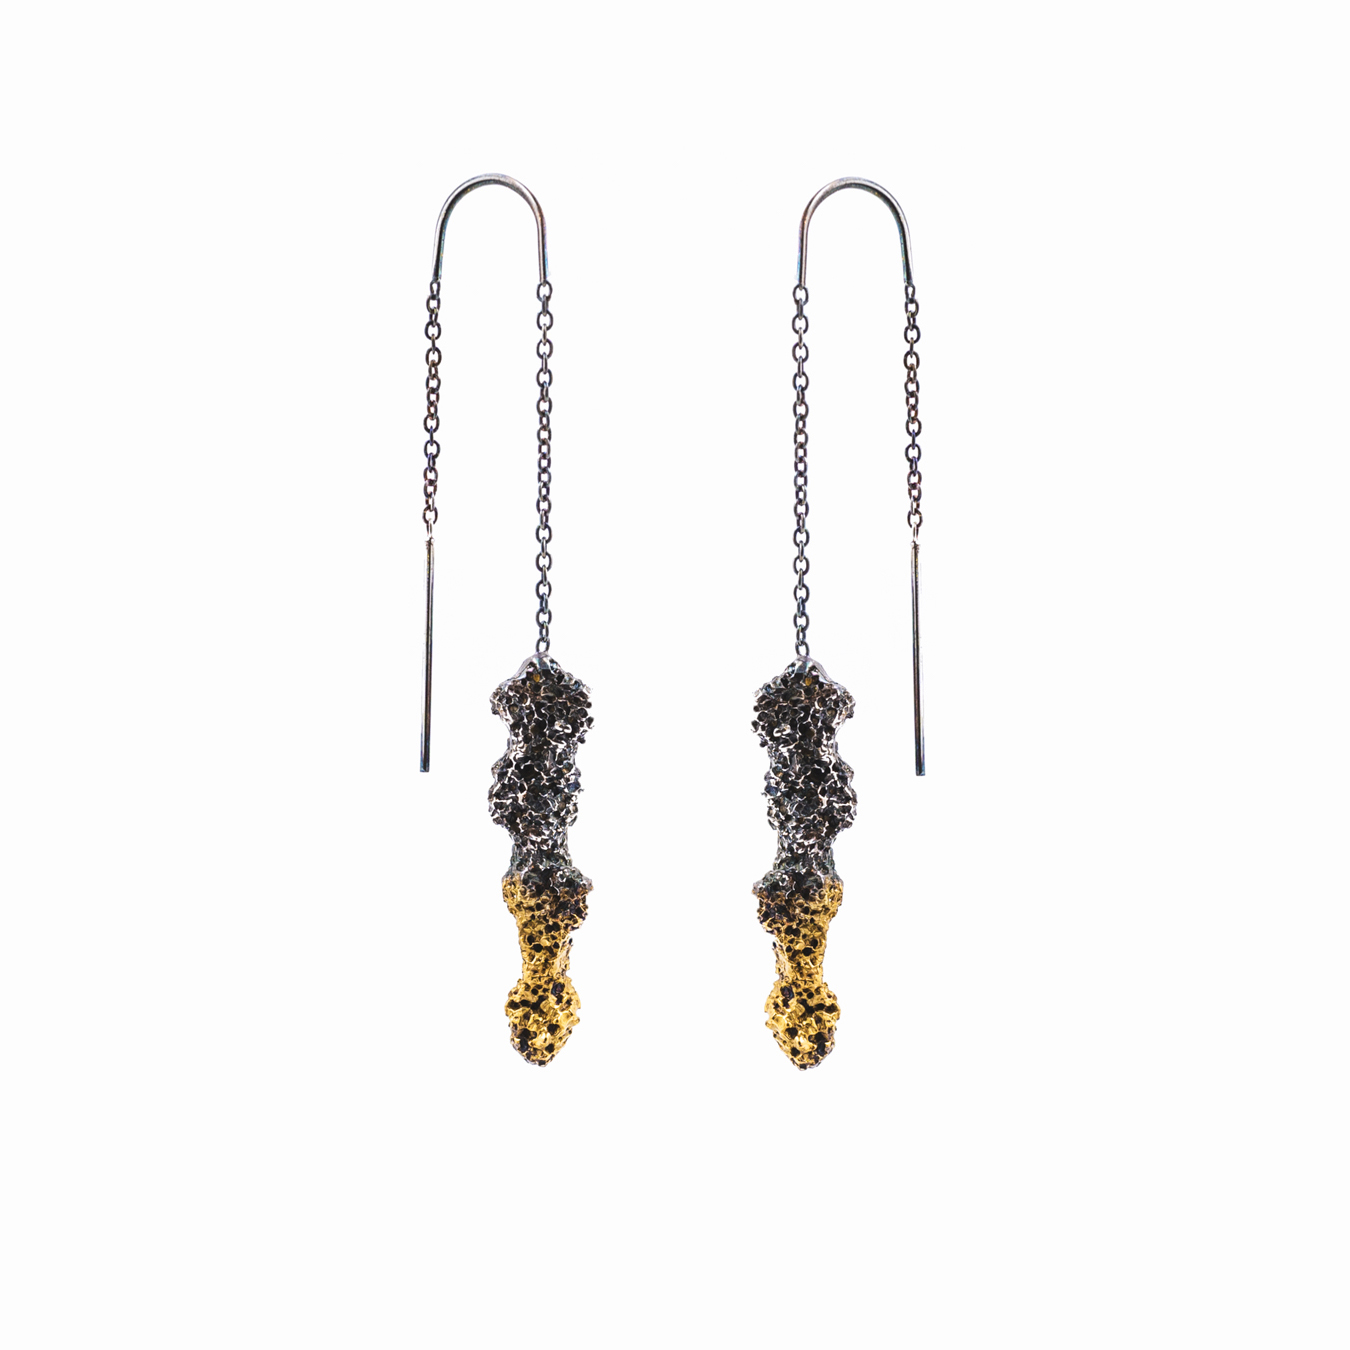 Spire Earrings | Sterling silver, gold vermeil, patina.